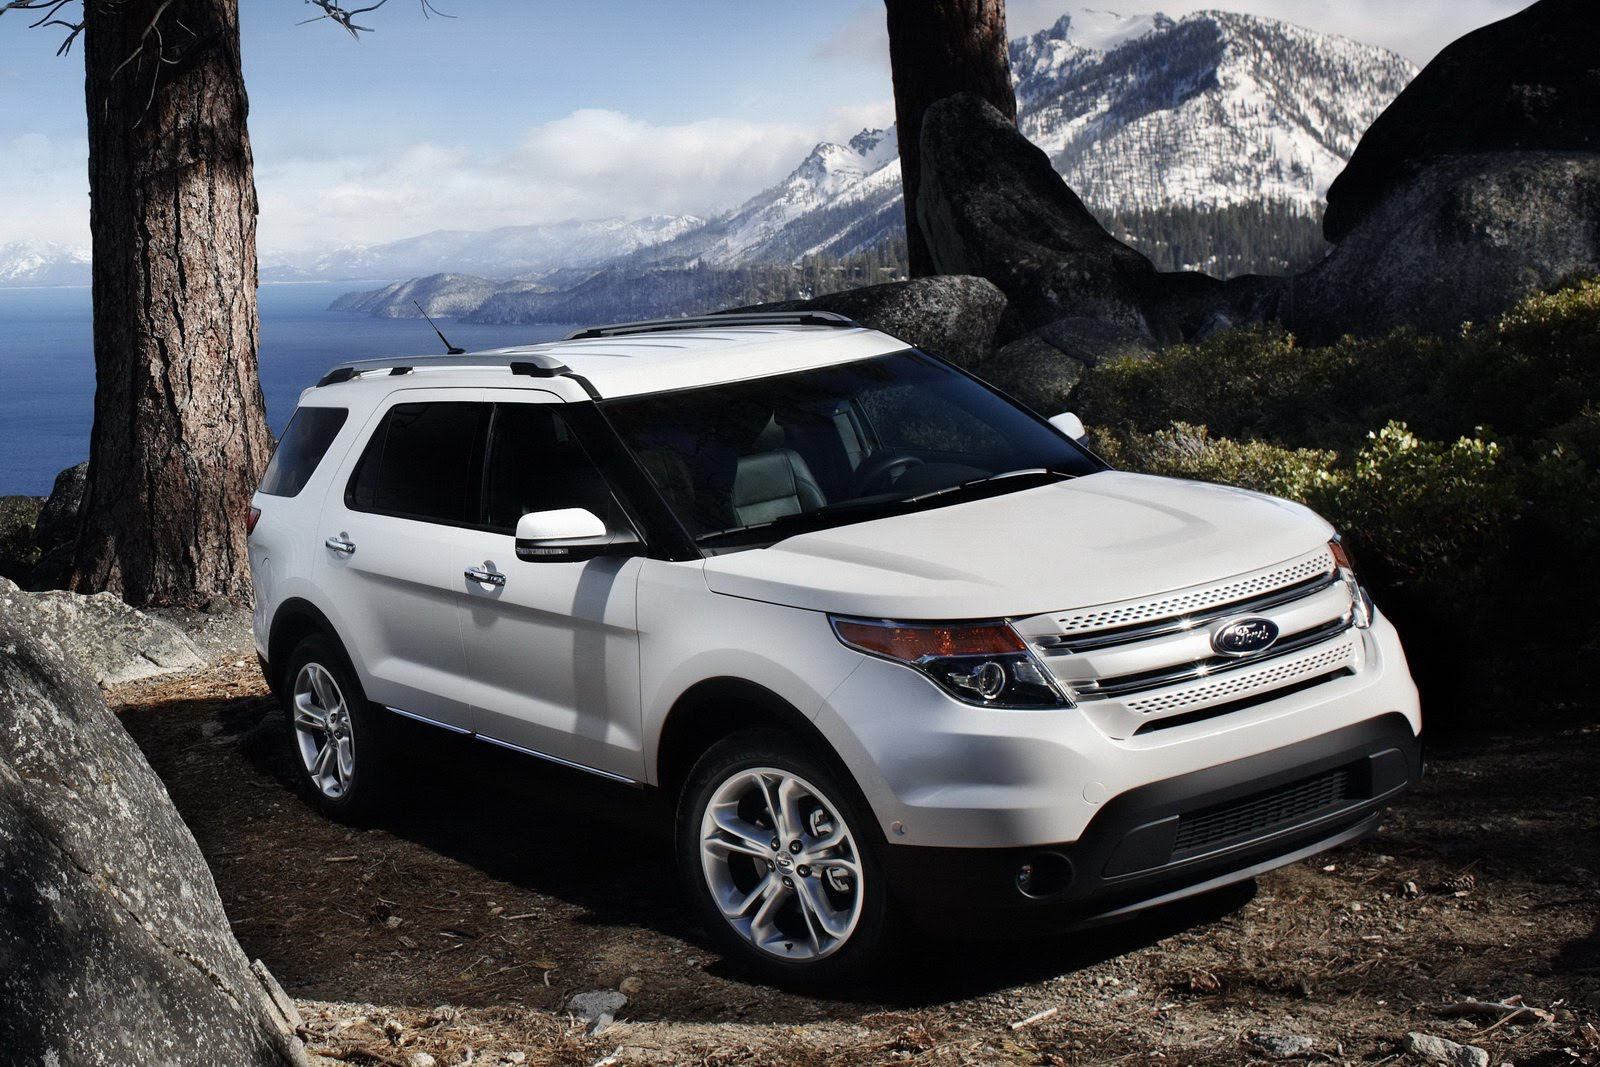 File:2013 Ford Explorer Sport -- 2012 NYIAS.JPG - Wikipedia, the free